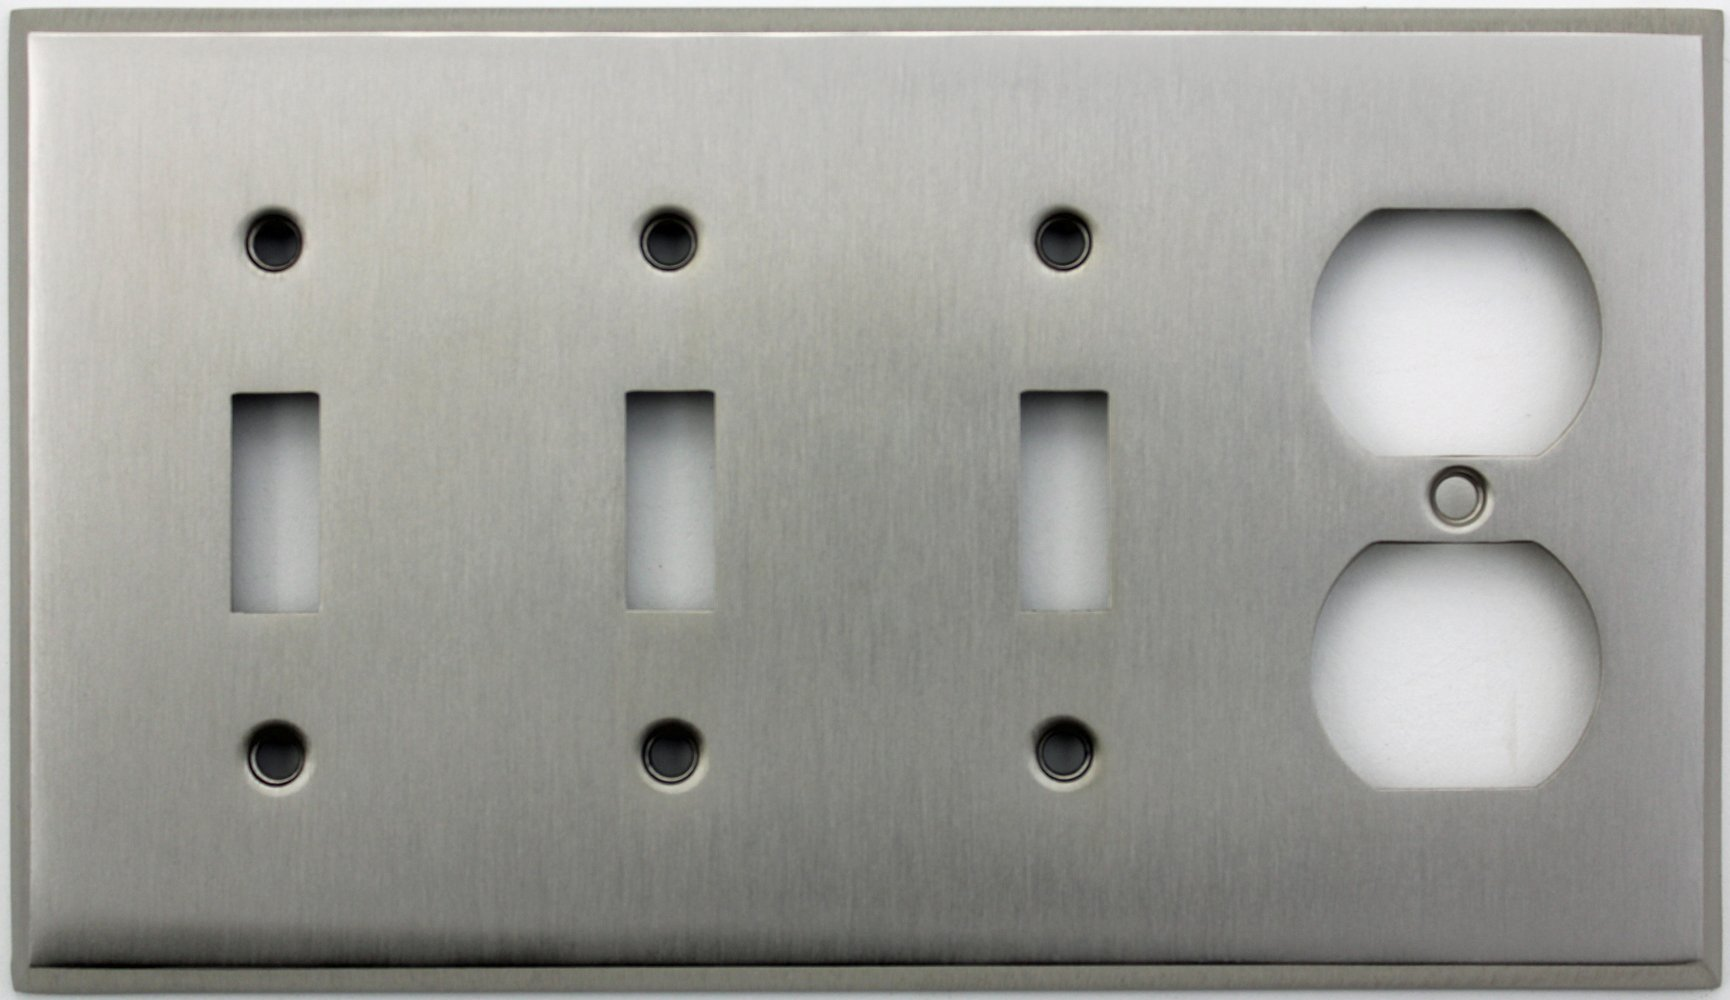 Classic Accents Stamped Steel Satin Nickel Four Gang Wall Plate - Three Toggle Light Switch Openings One Duplex Outlet Opening